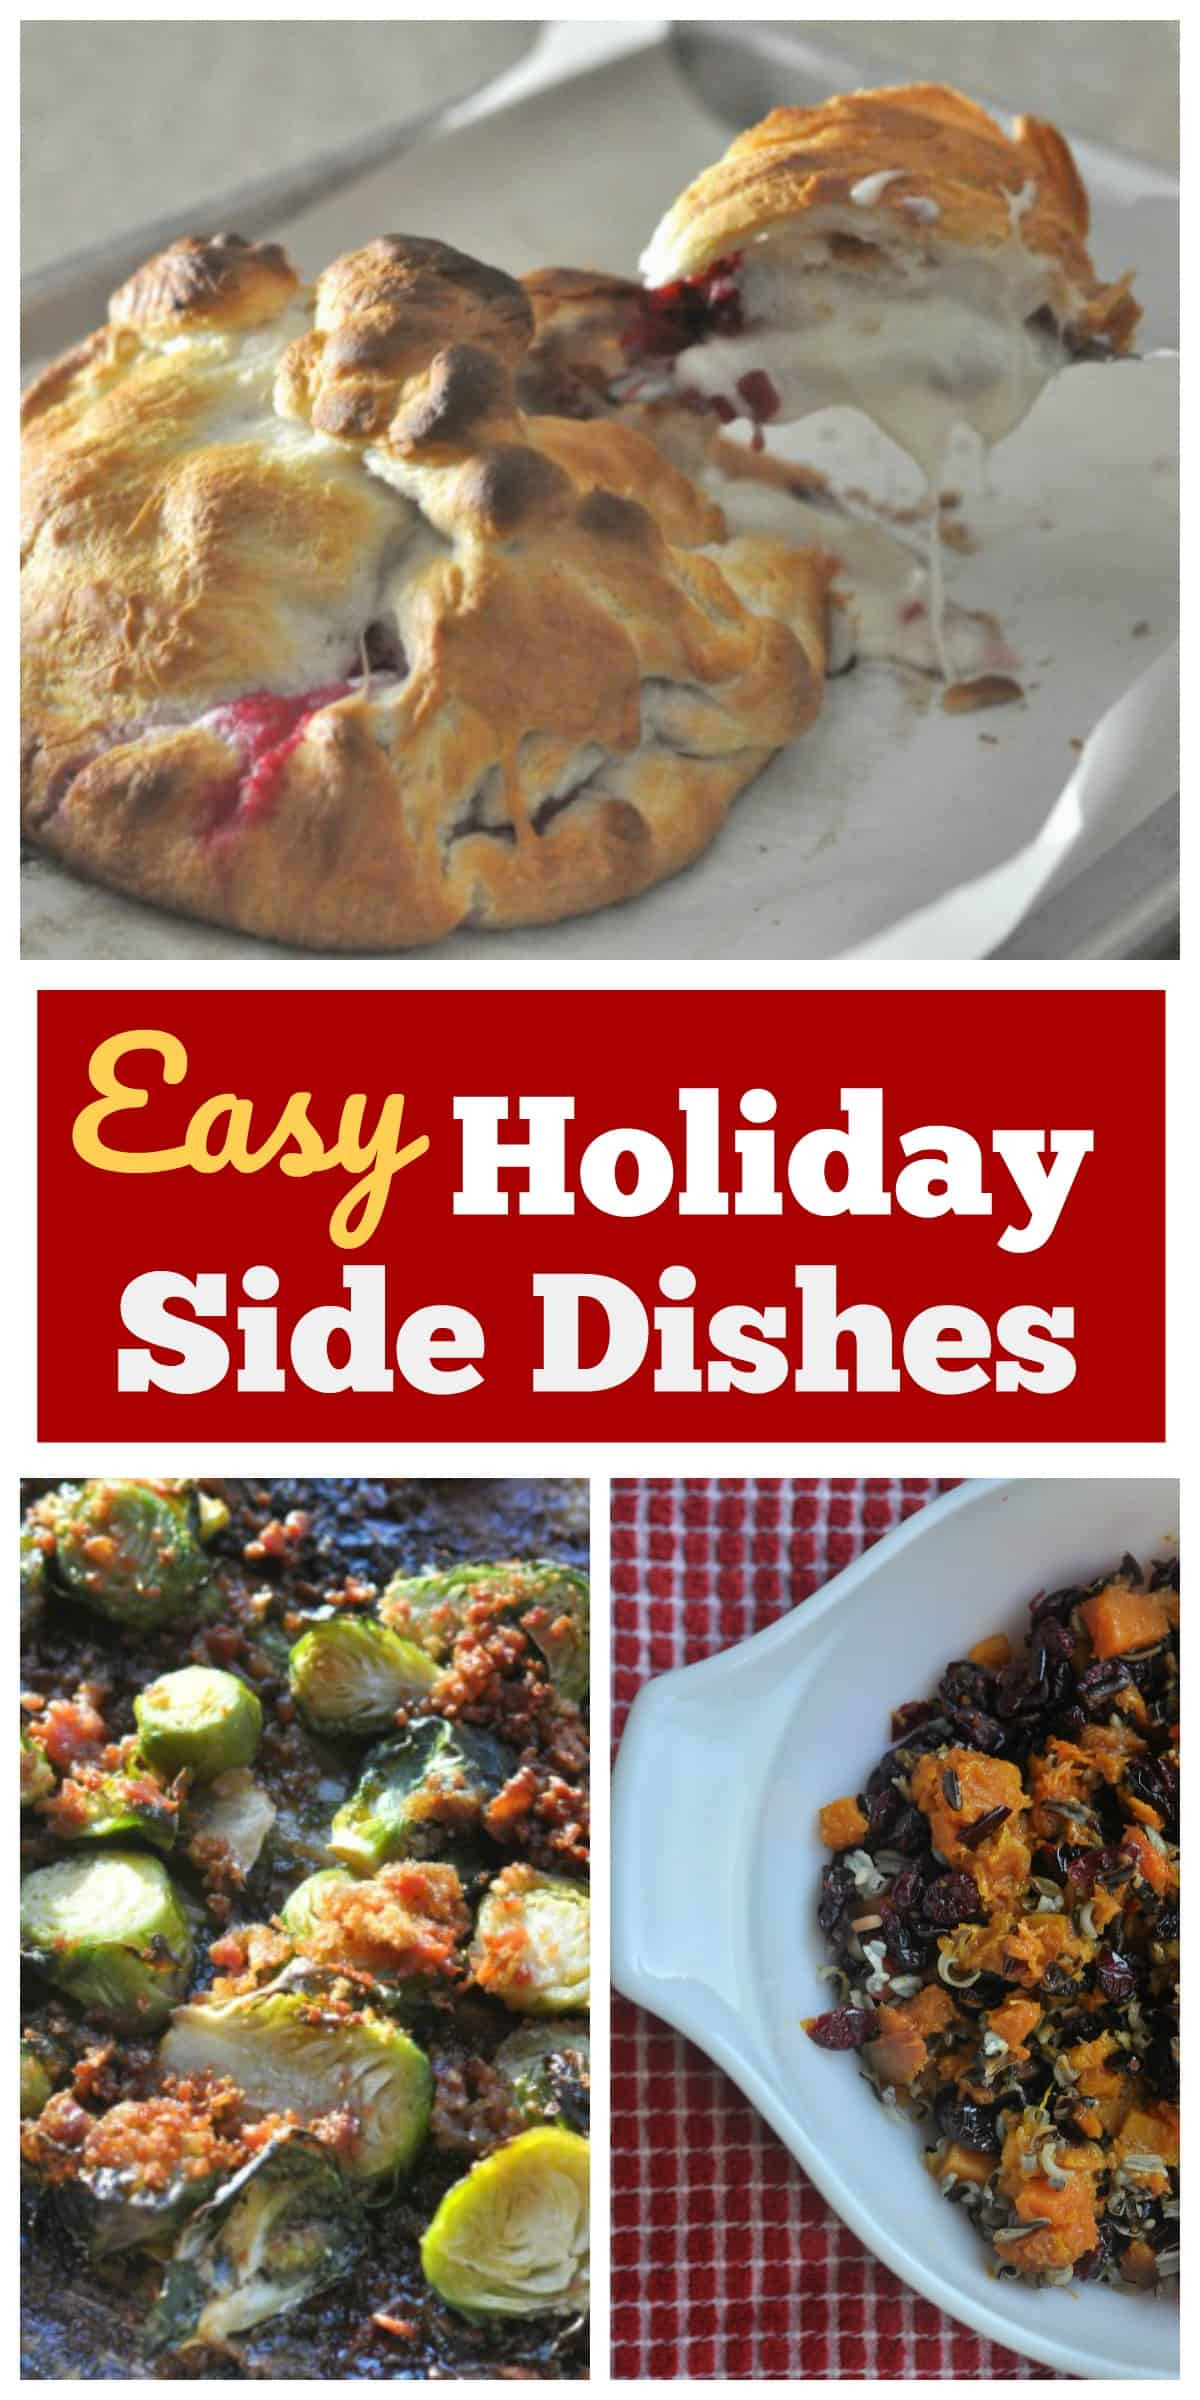 Easy Christmas Side Dishes  Easy Holiday Side Dishes Dining with Alice